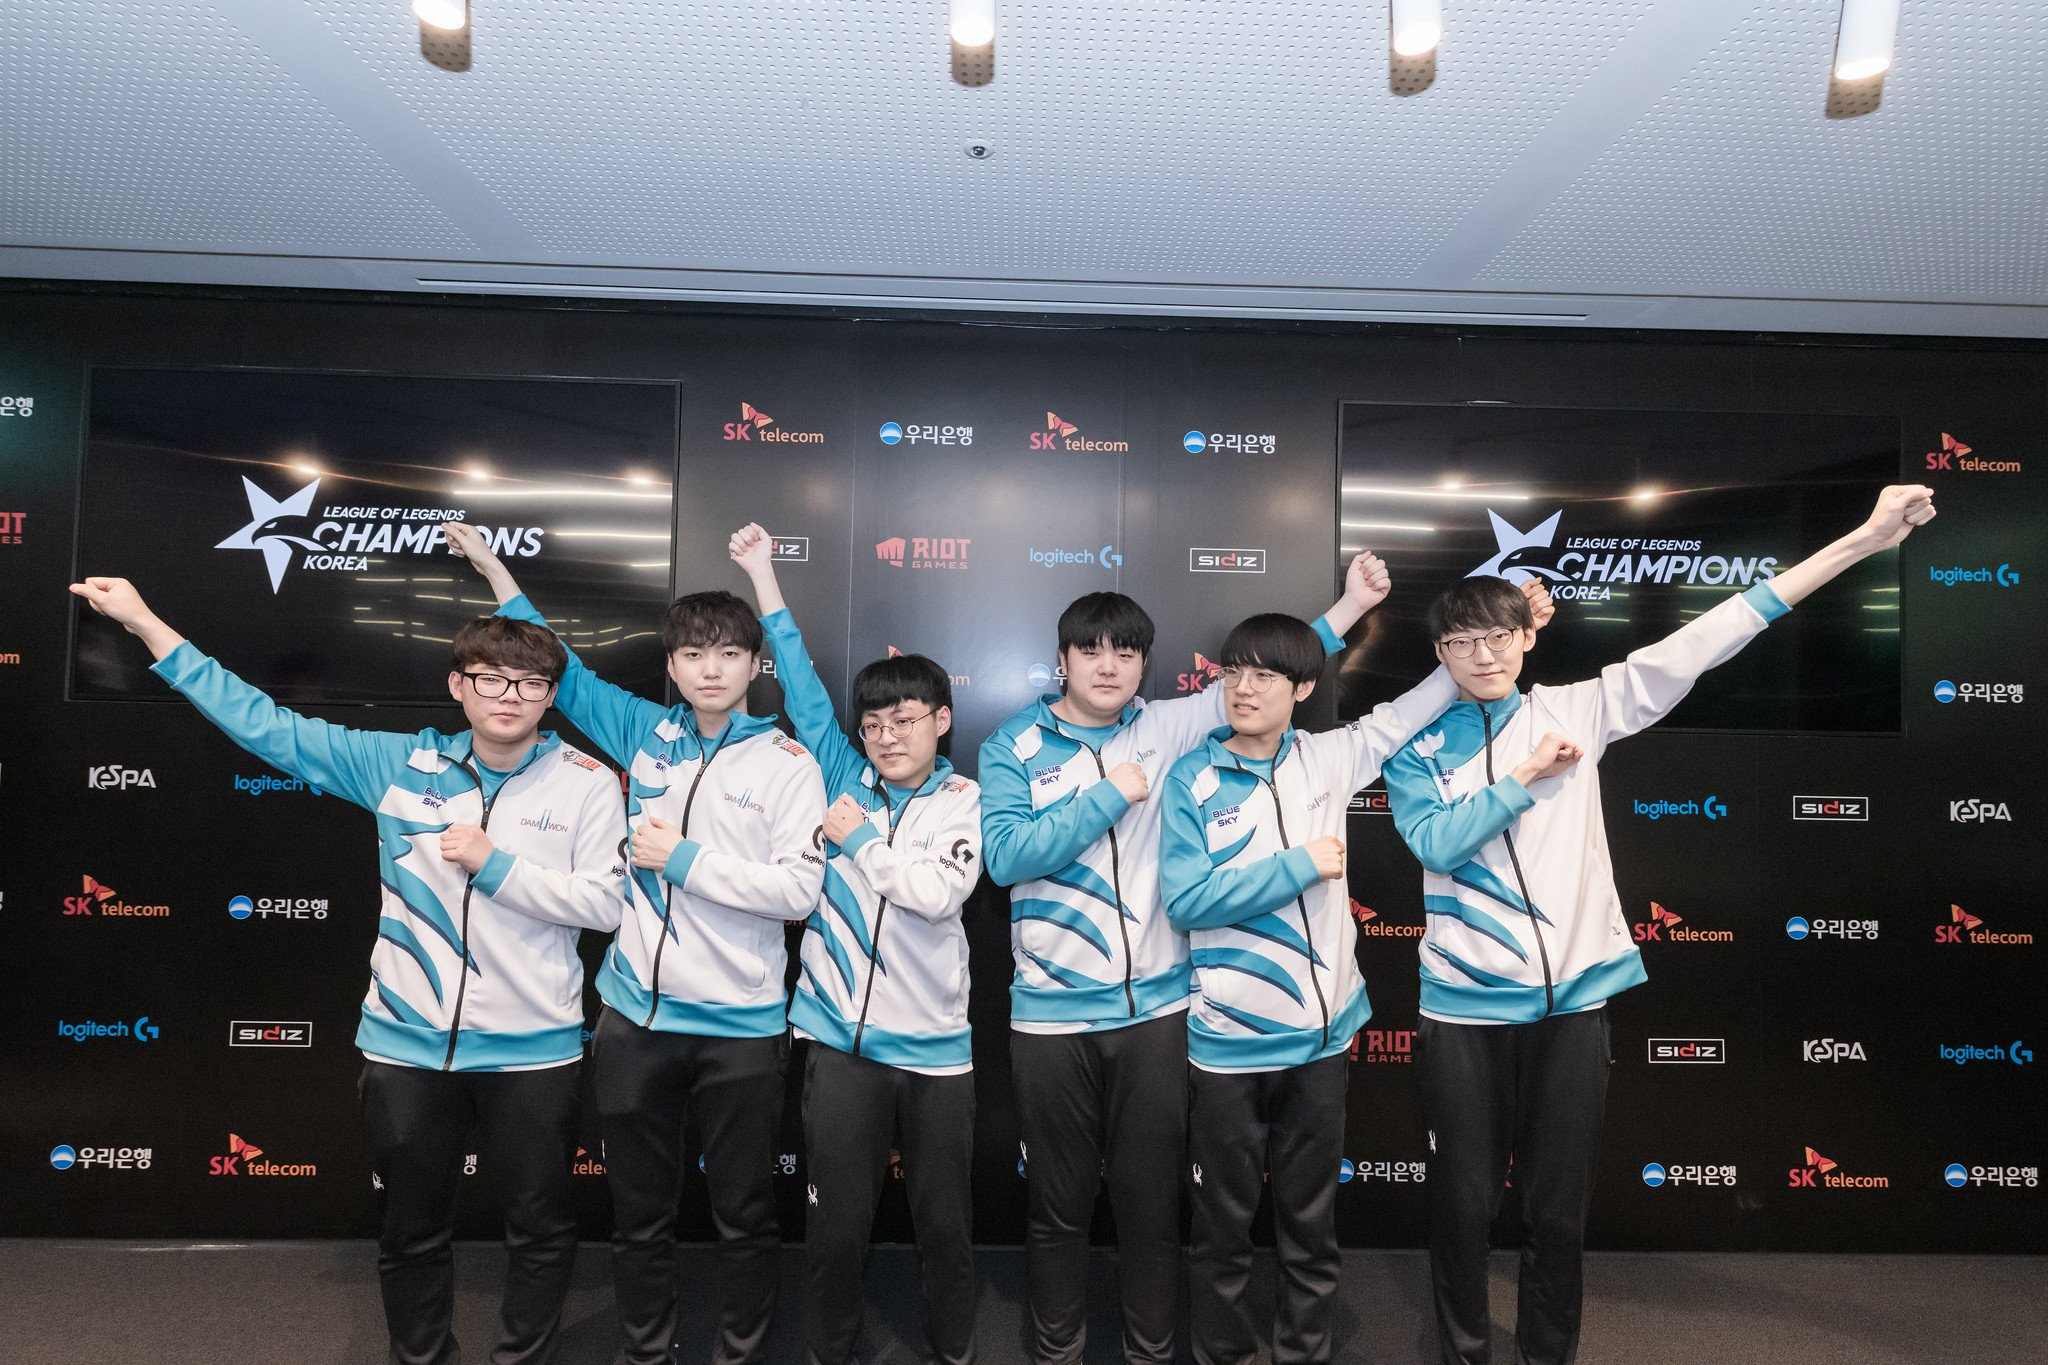 DAMWON Gaming's Victory During This Year's World Championship Regained League Champion Korea's Hope